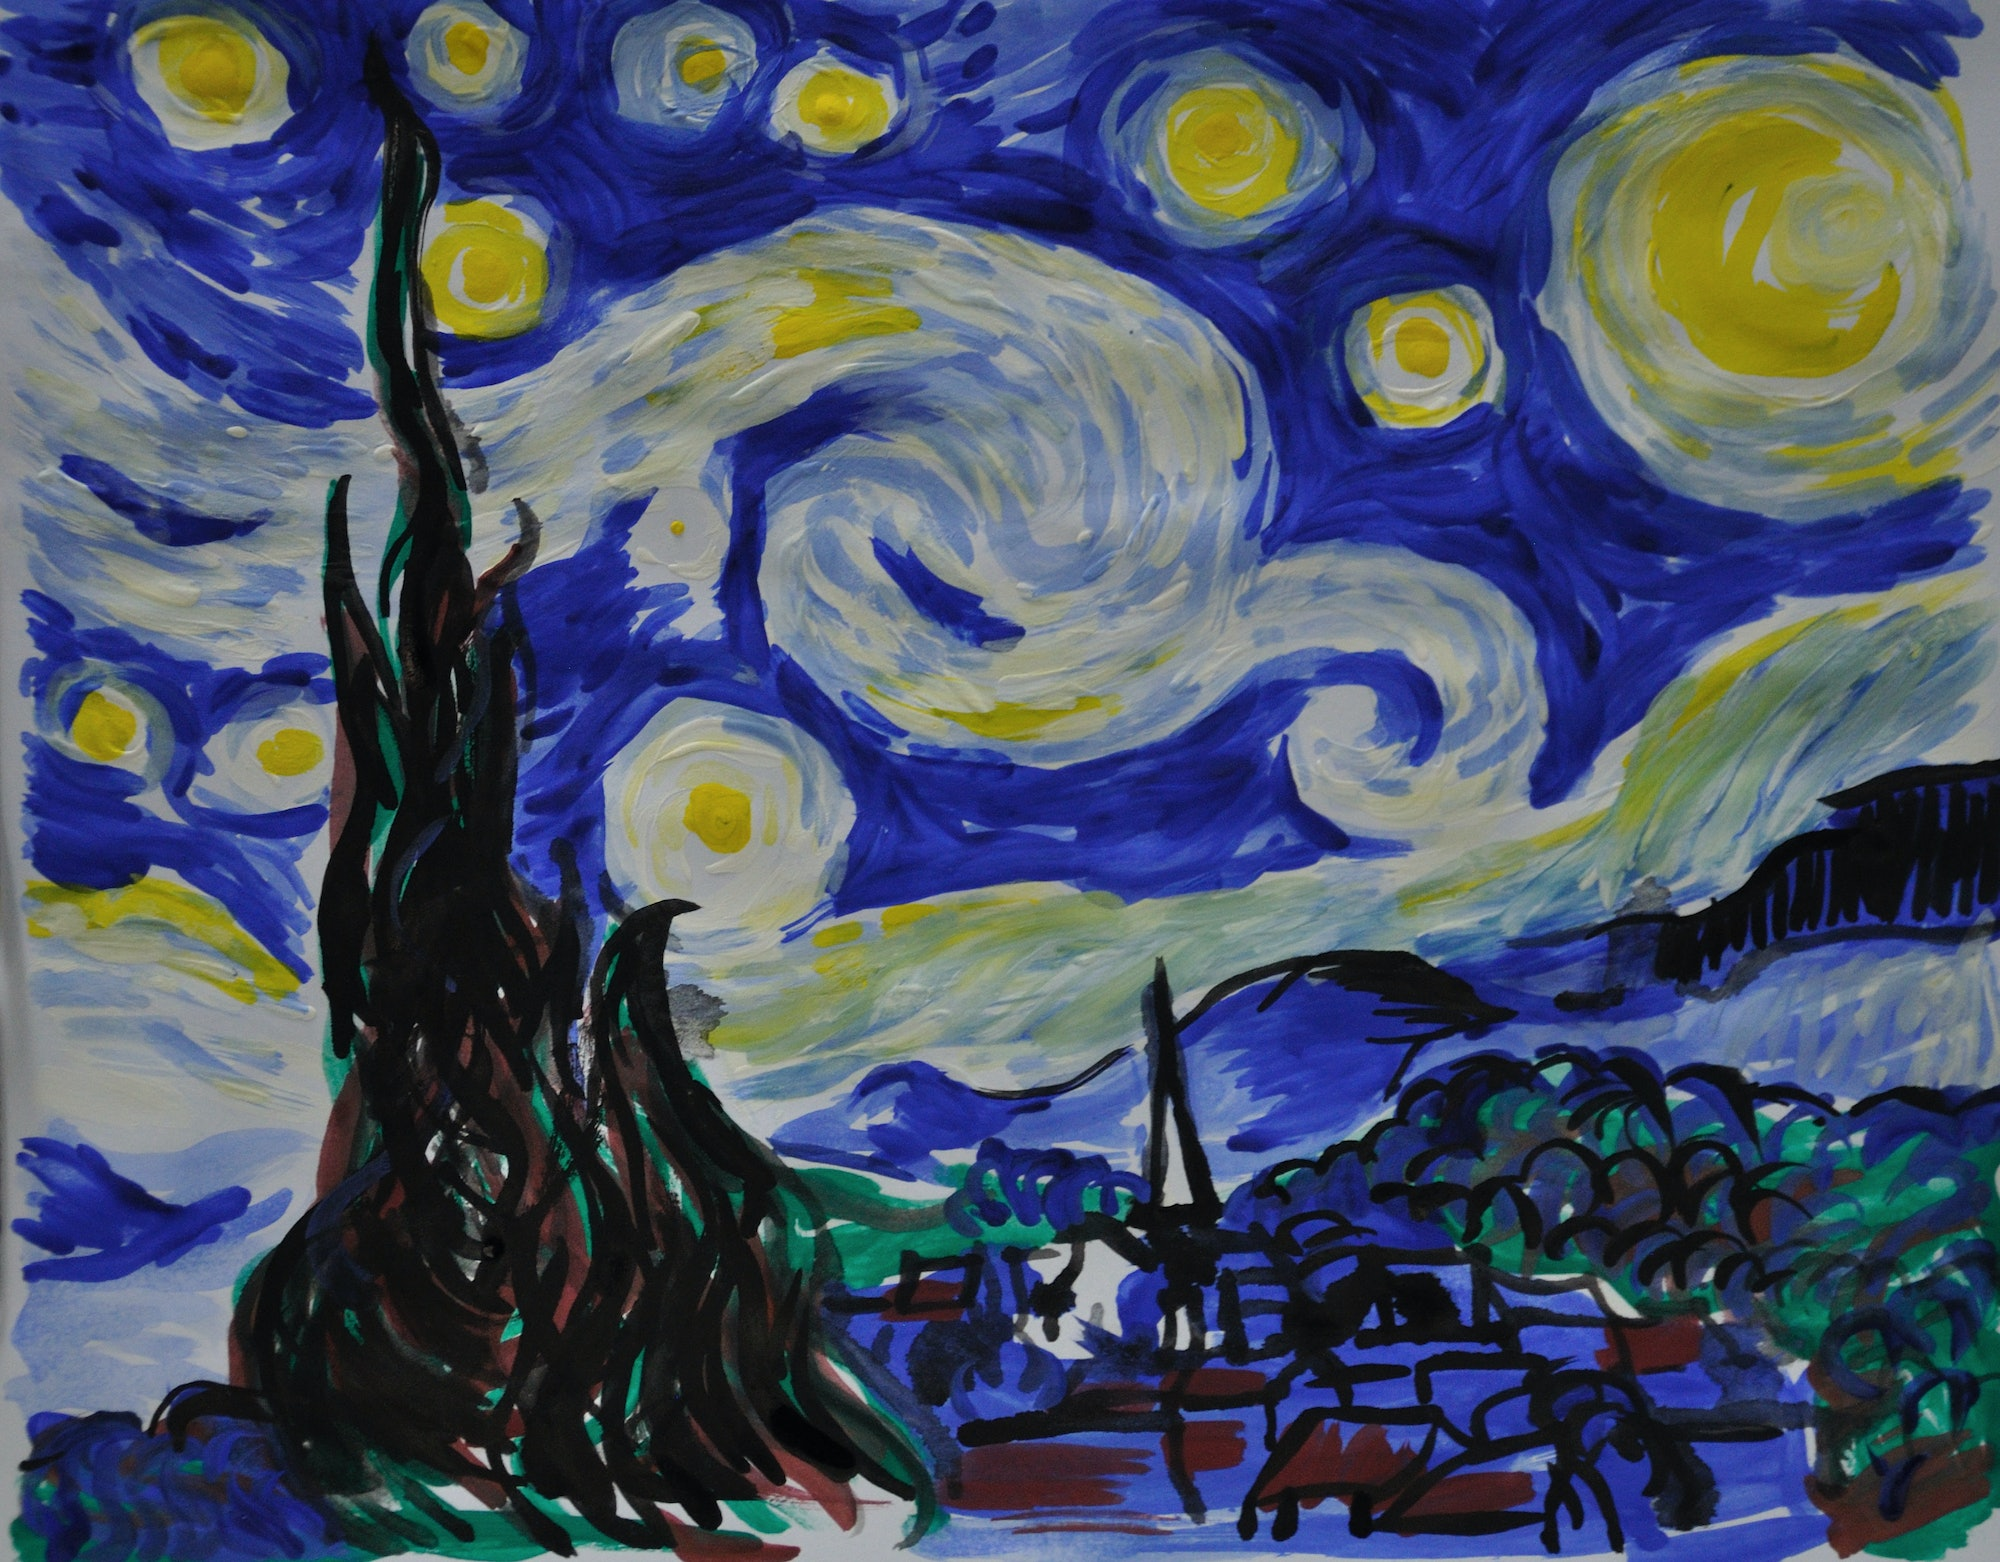 The Starry Night Robotic Art Competition A.I. Paint